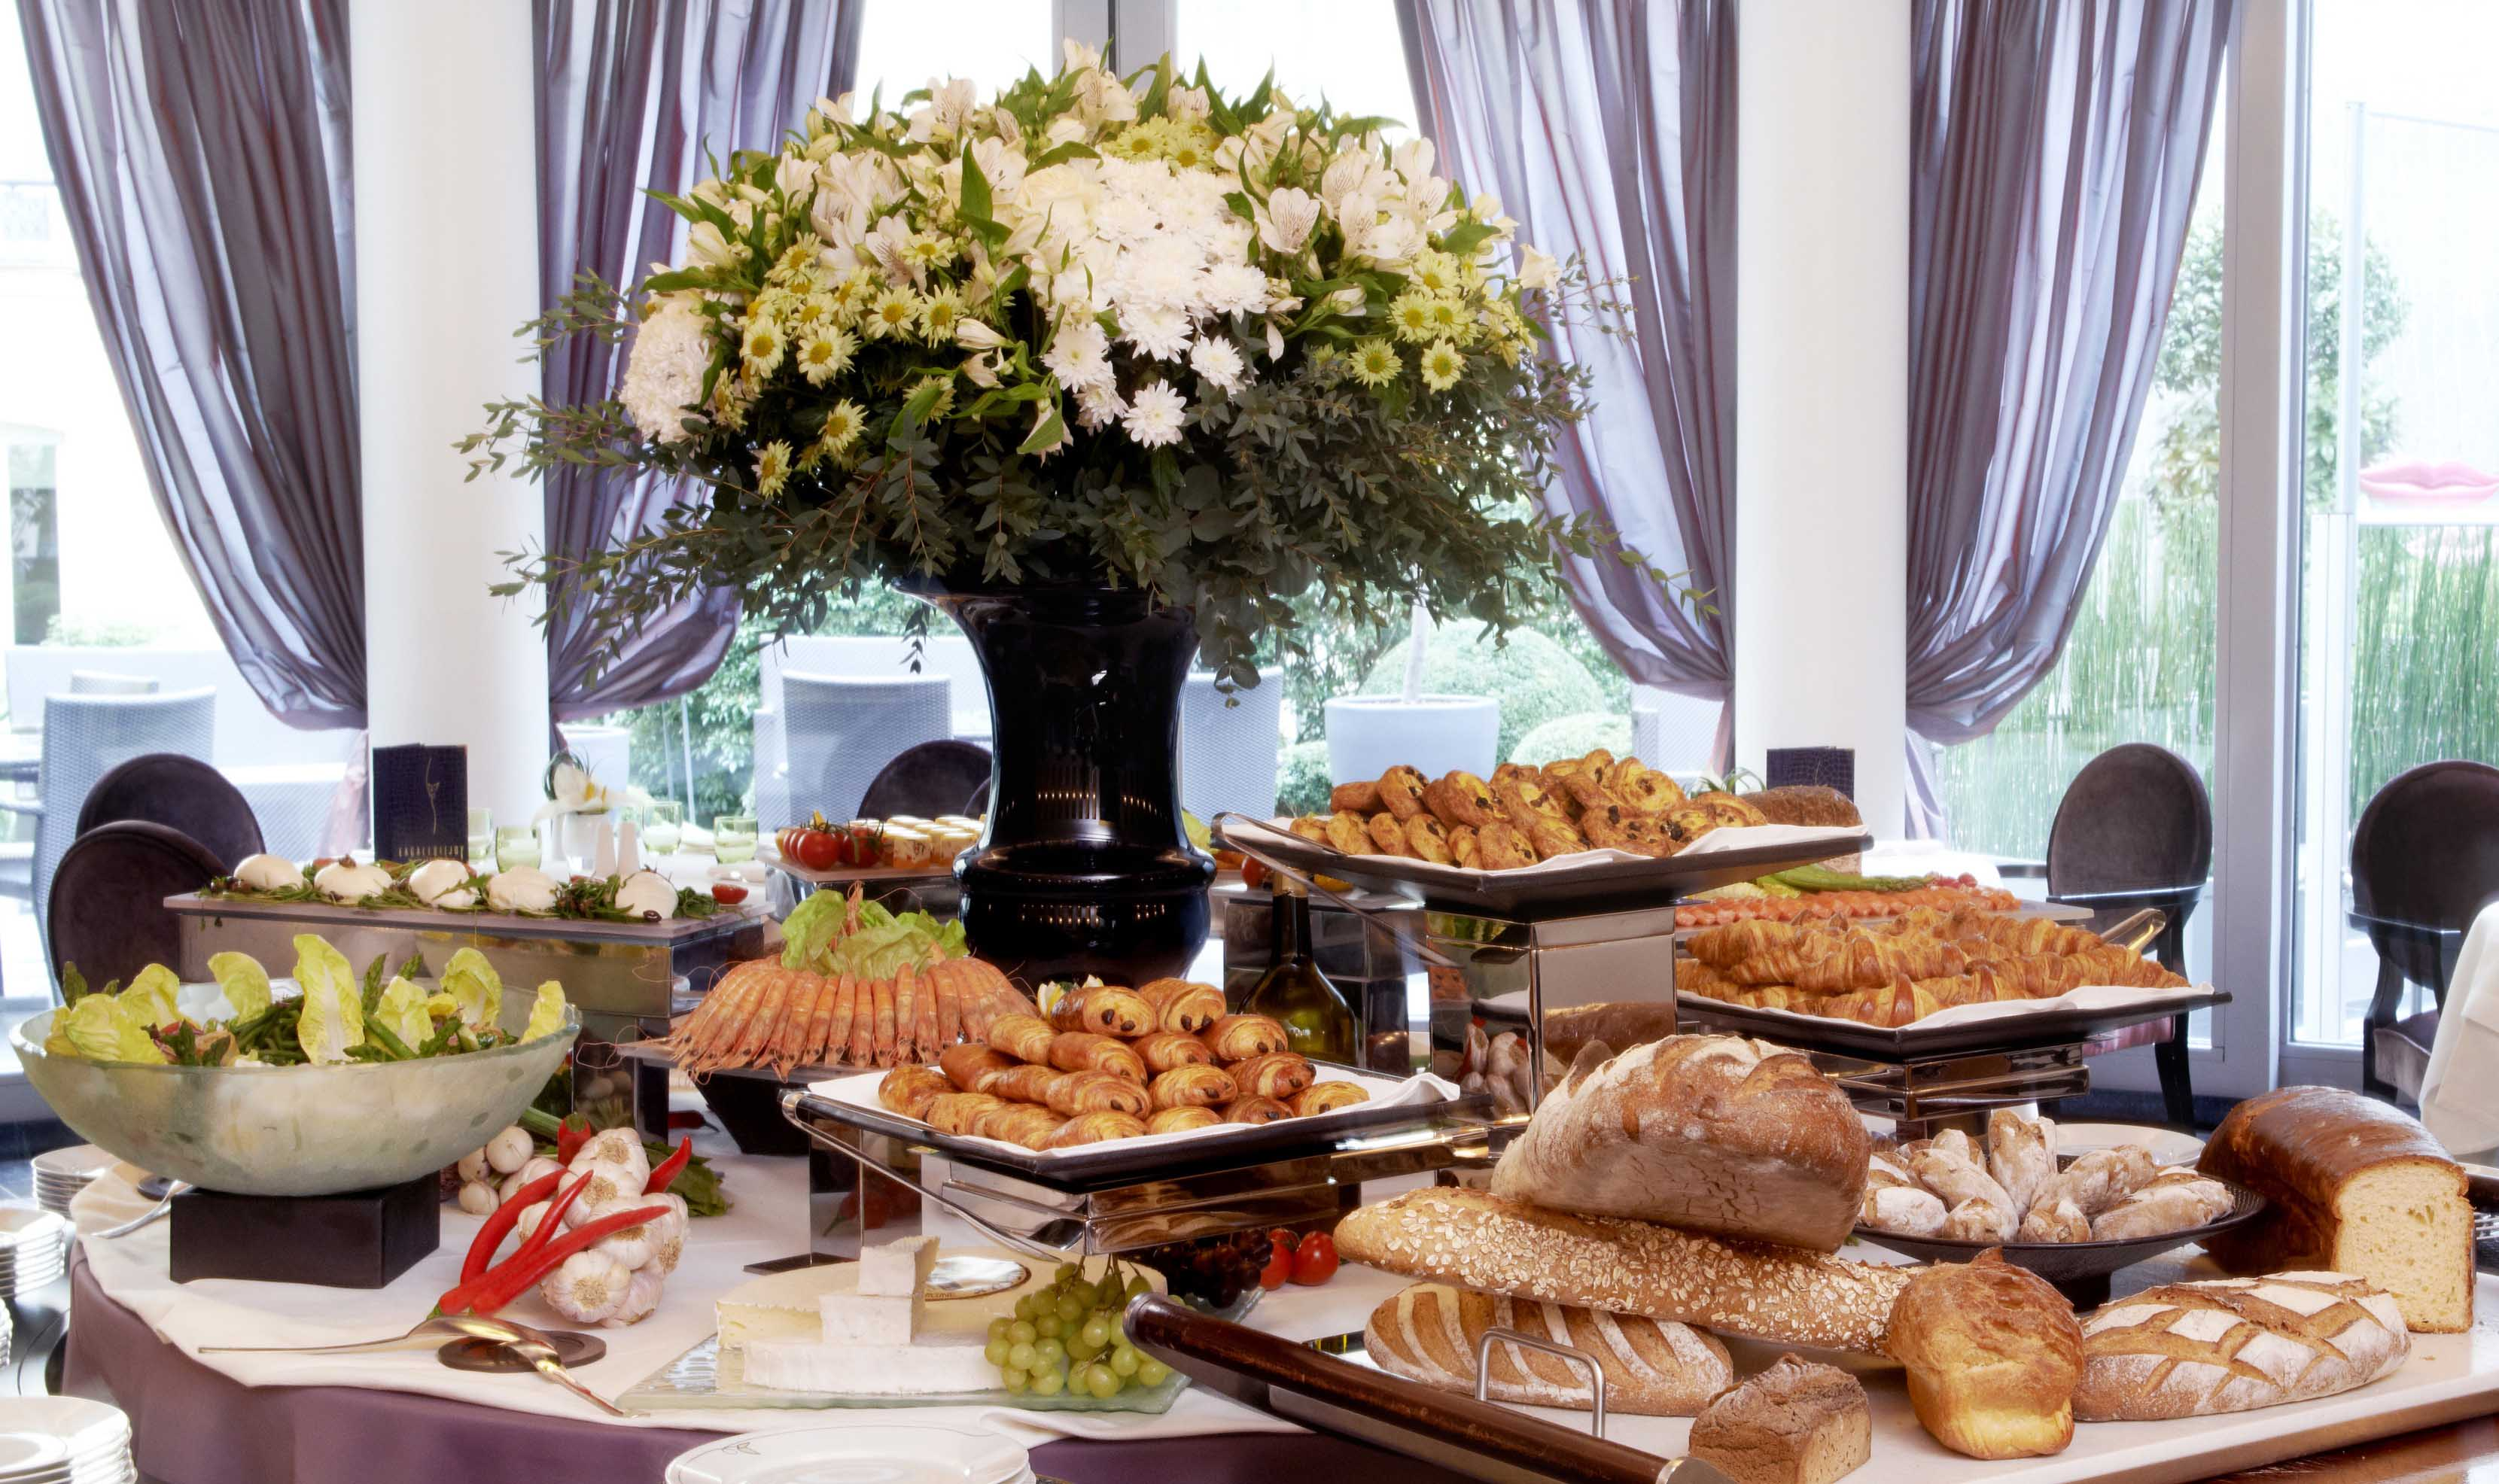 A y est le brunch du fouquet 39 s barri re arrive silencio for Au jardin les amis sunday brunch